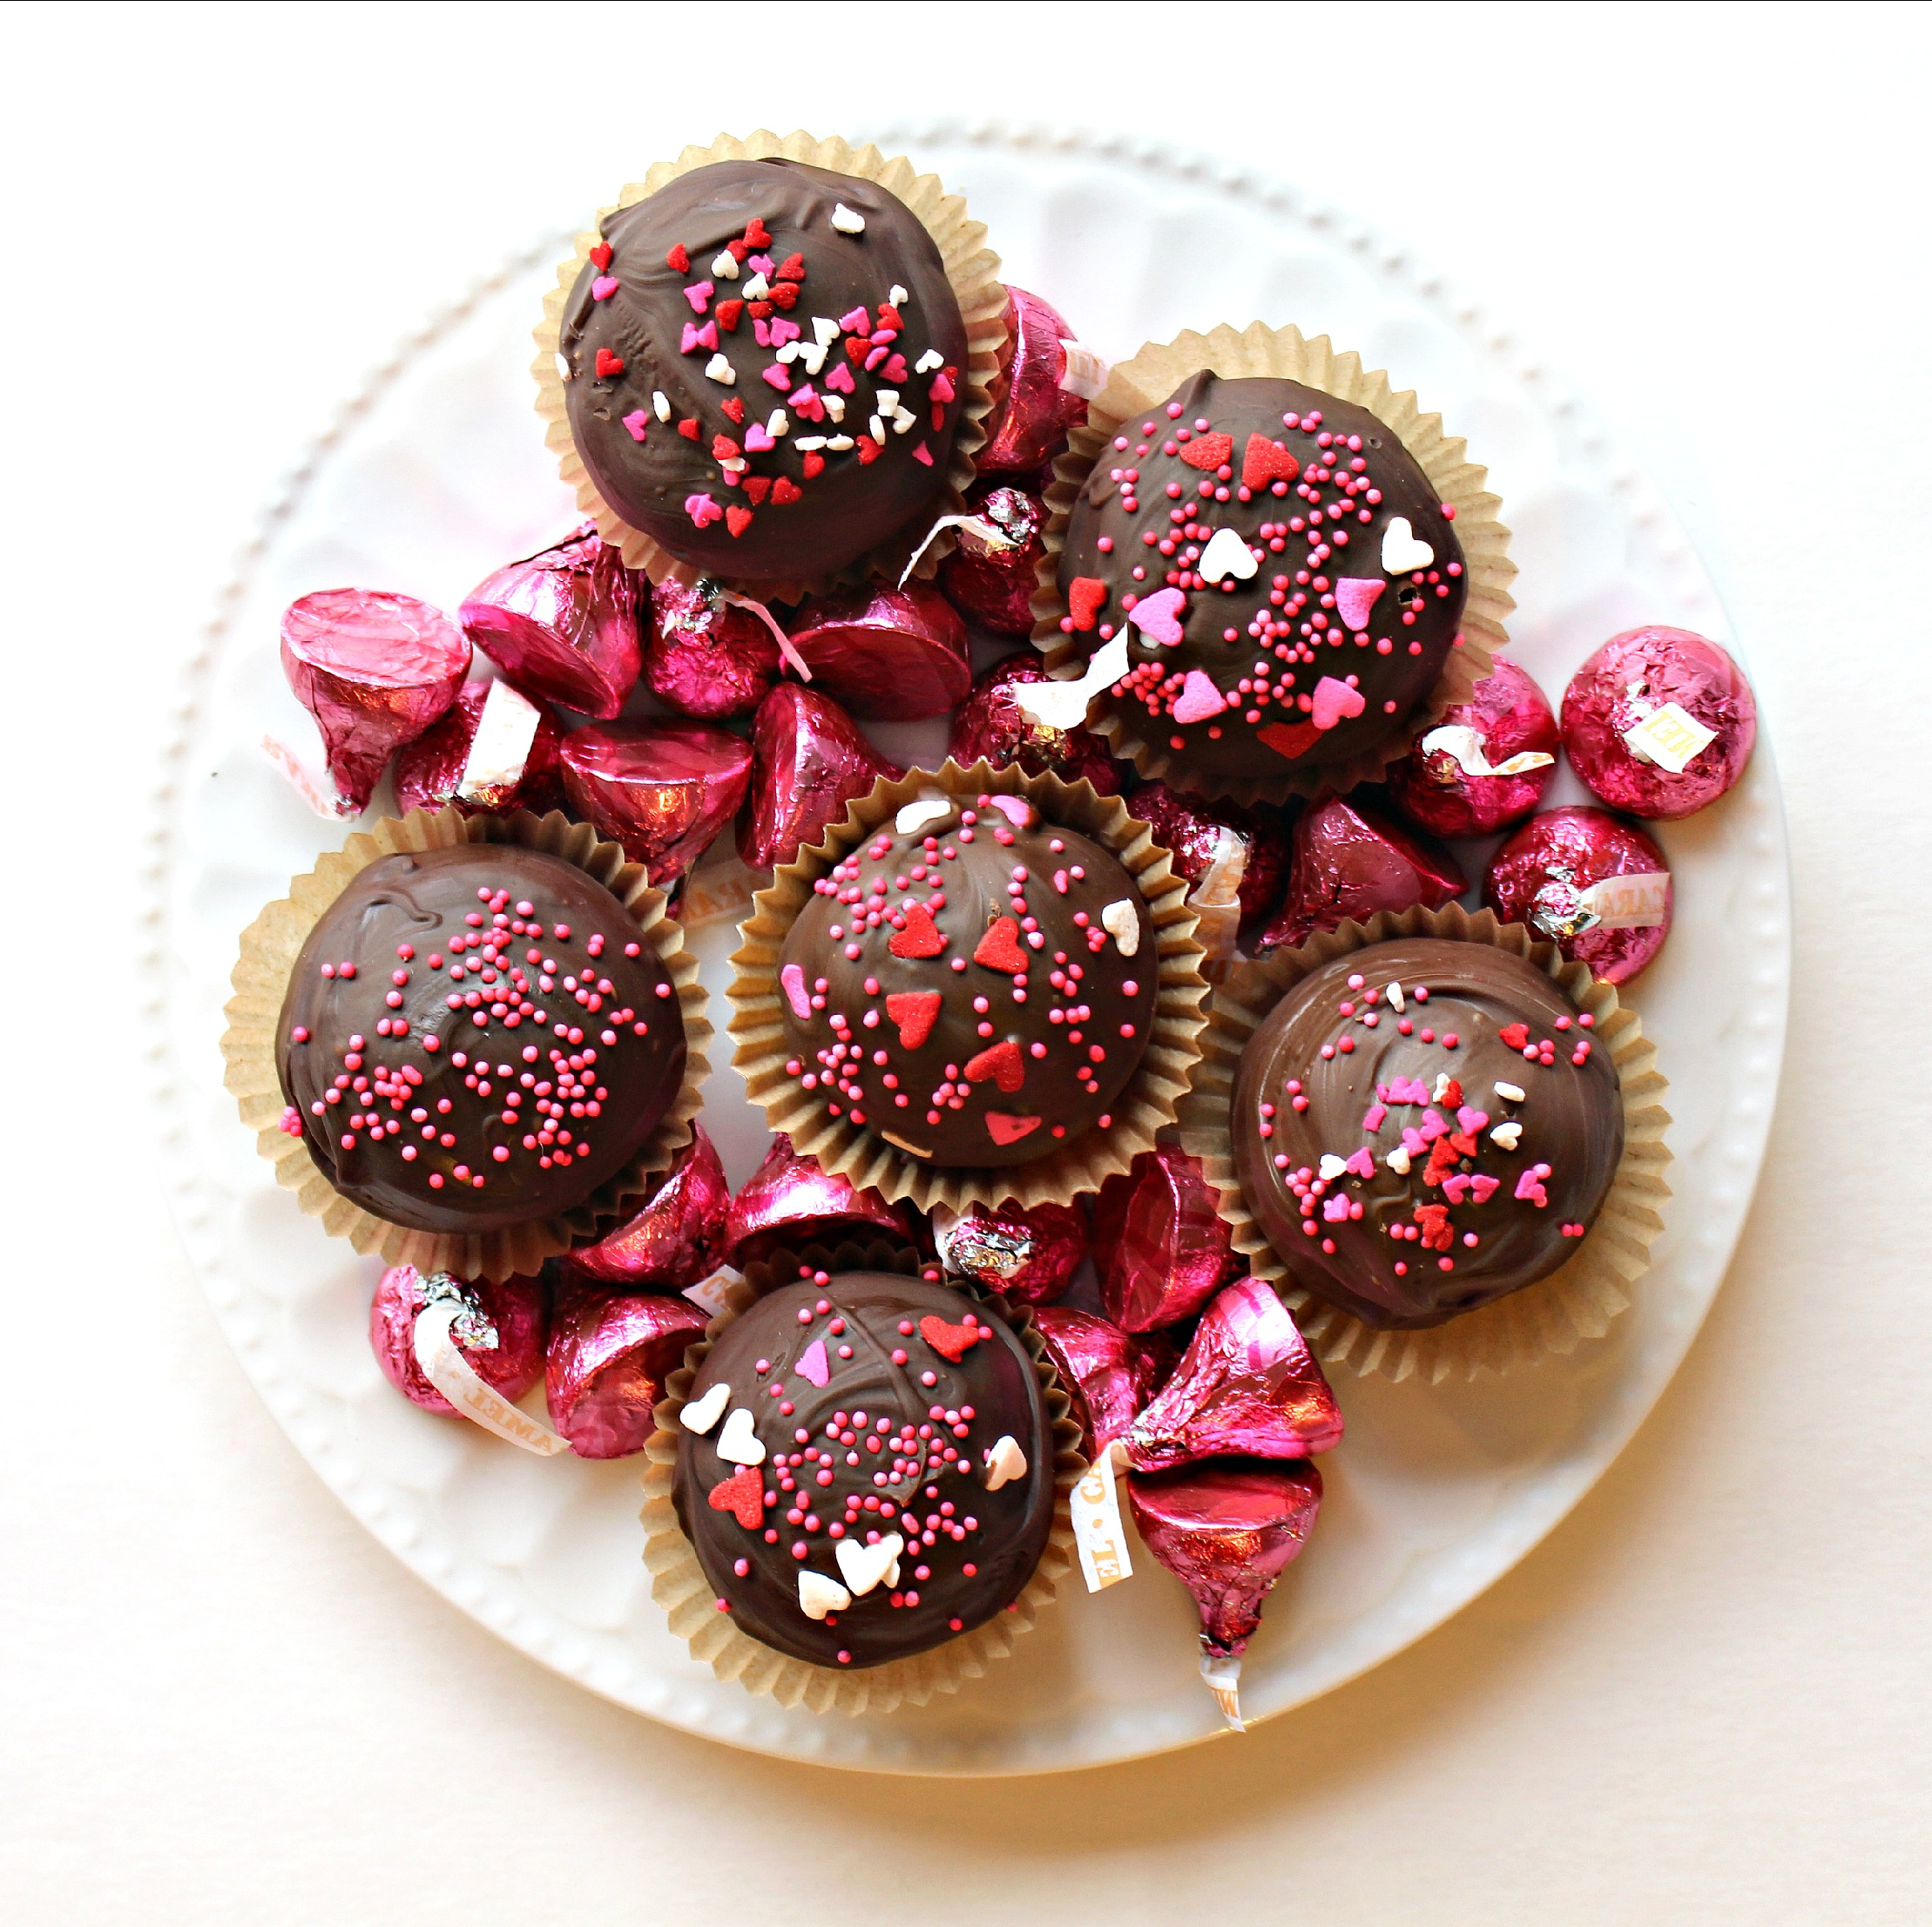 Kiss Cookies from above showing the red and pink nonpareils and heart sprinkles topping the chocolate coated cookies.